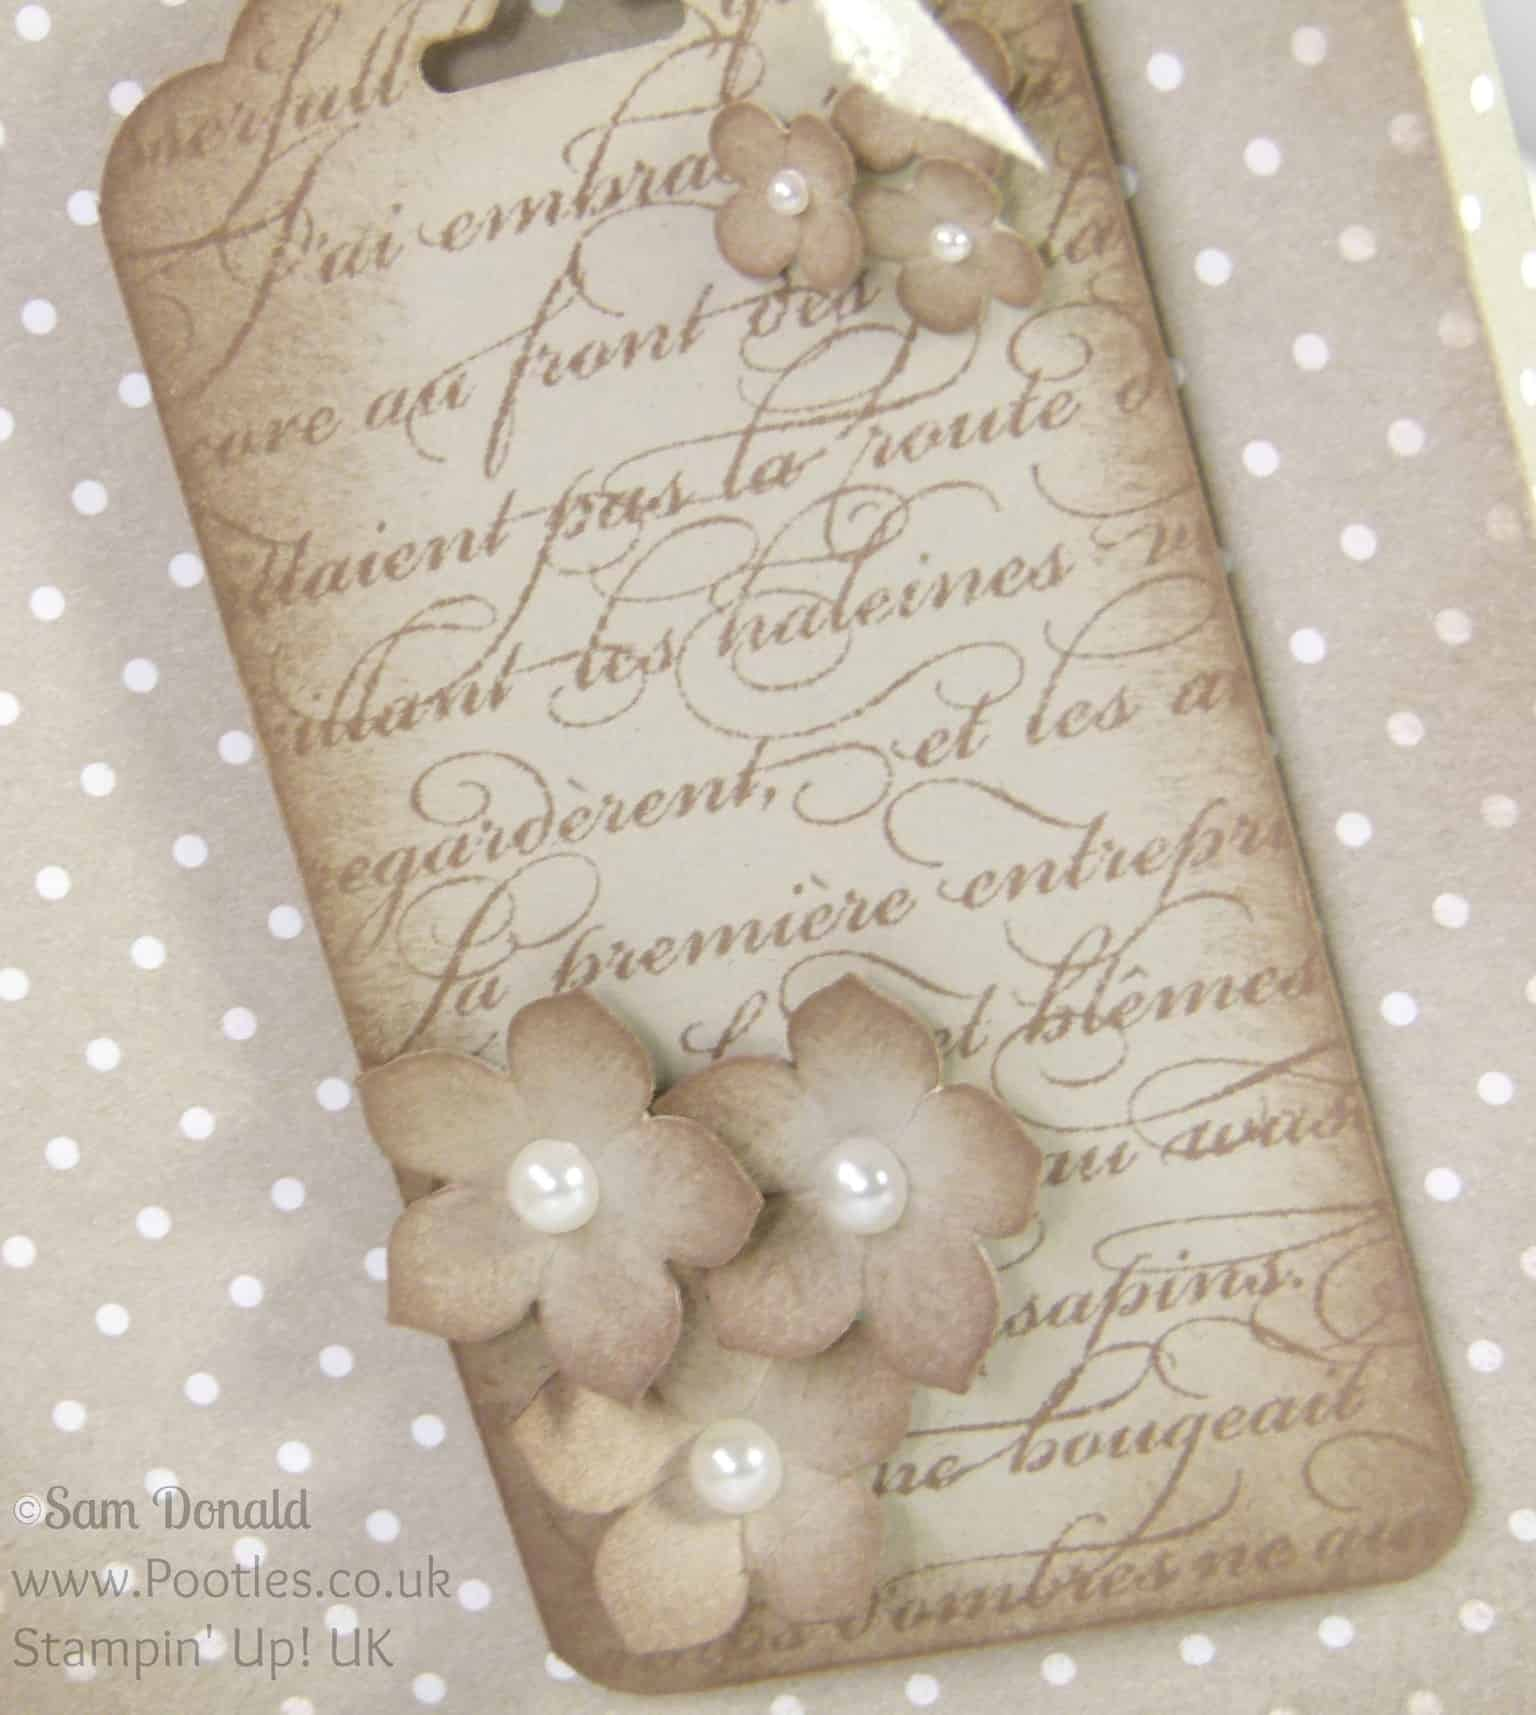 Stampin' Up! UK Independent Demonstrator Pootles. Aged Paper Bag Tutorial using Stampin' Up Designer Series Paper Tag Detail